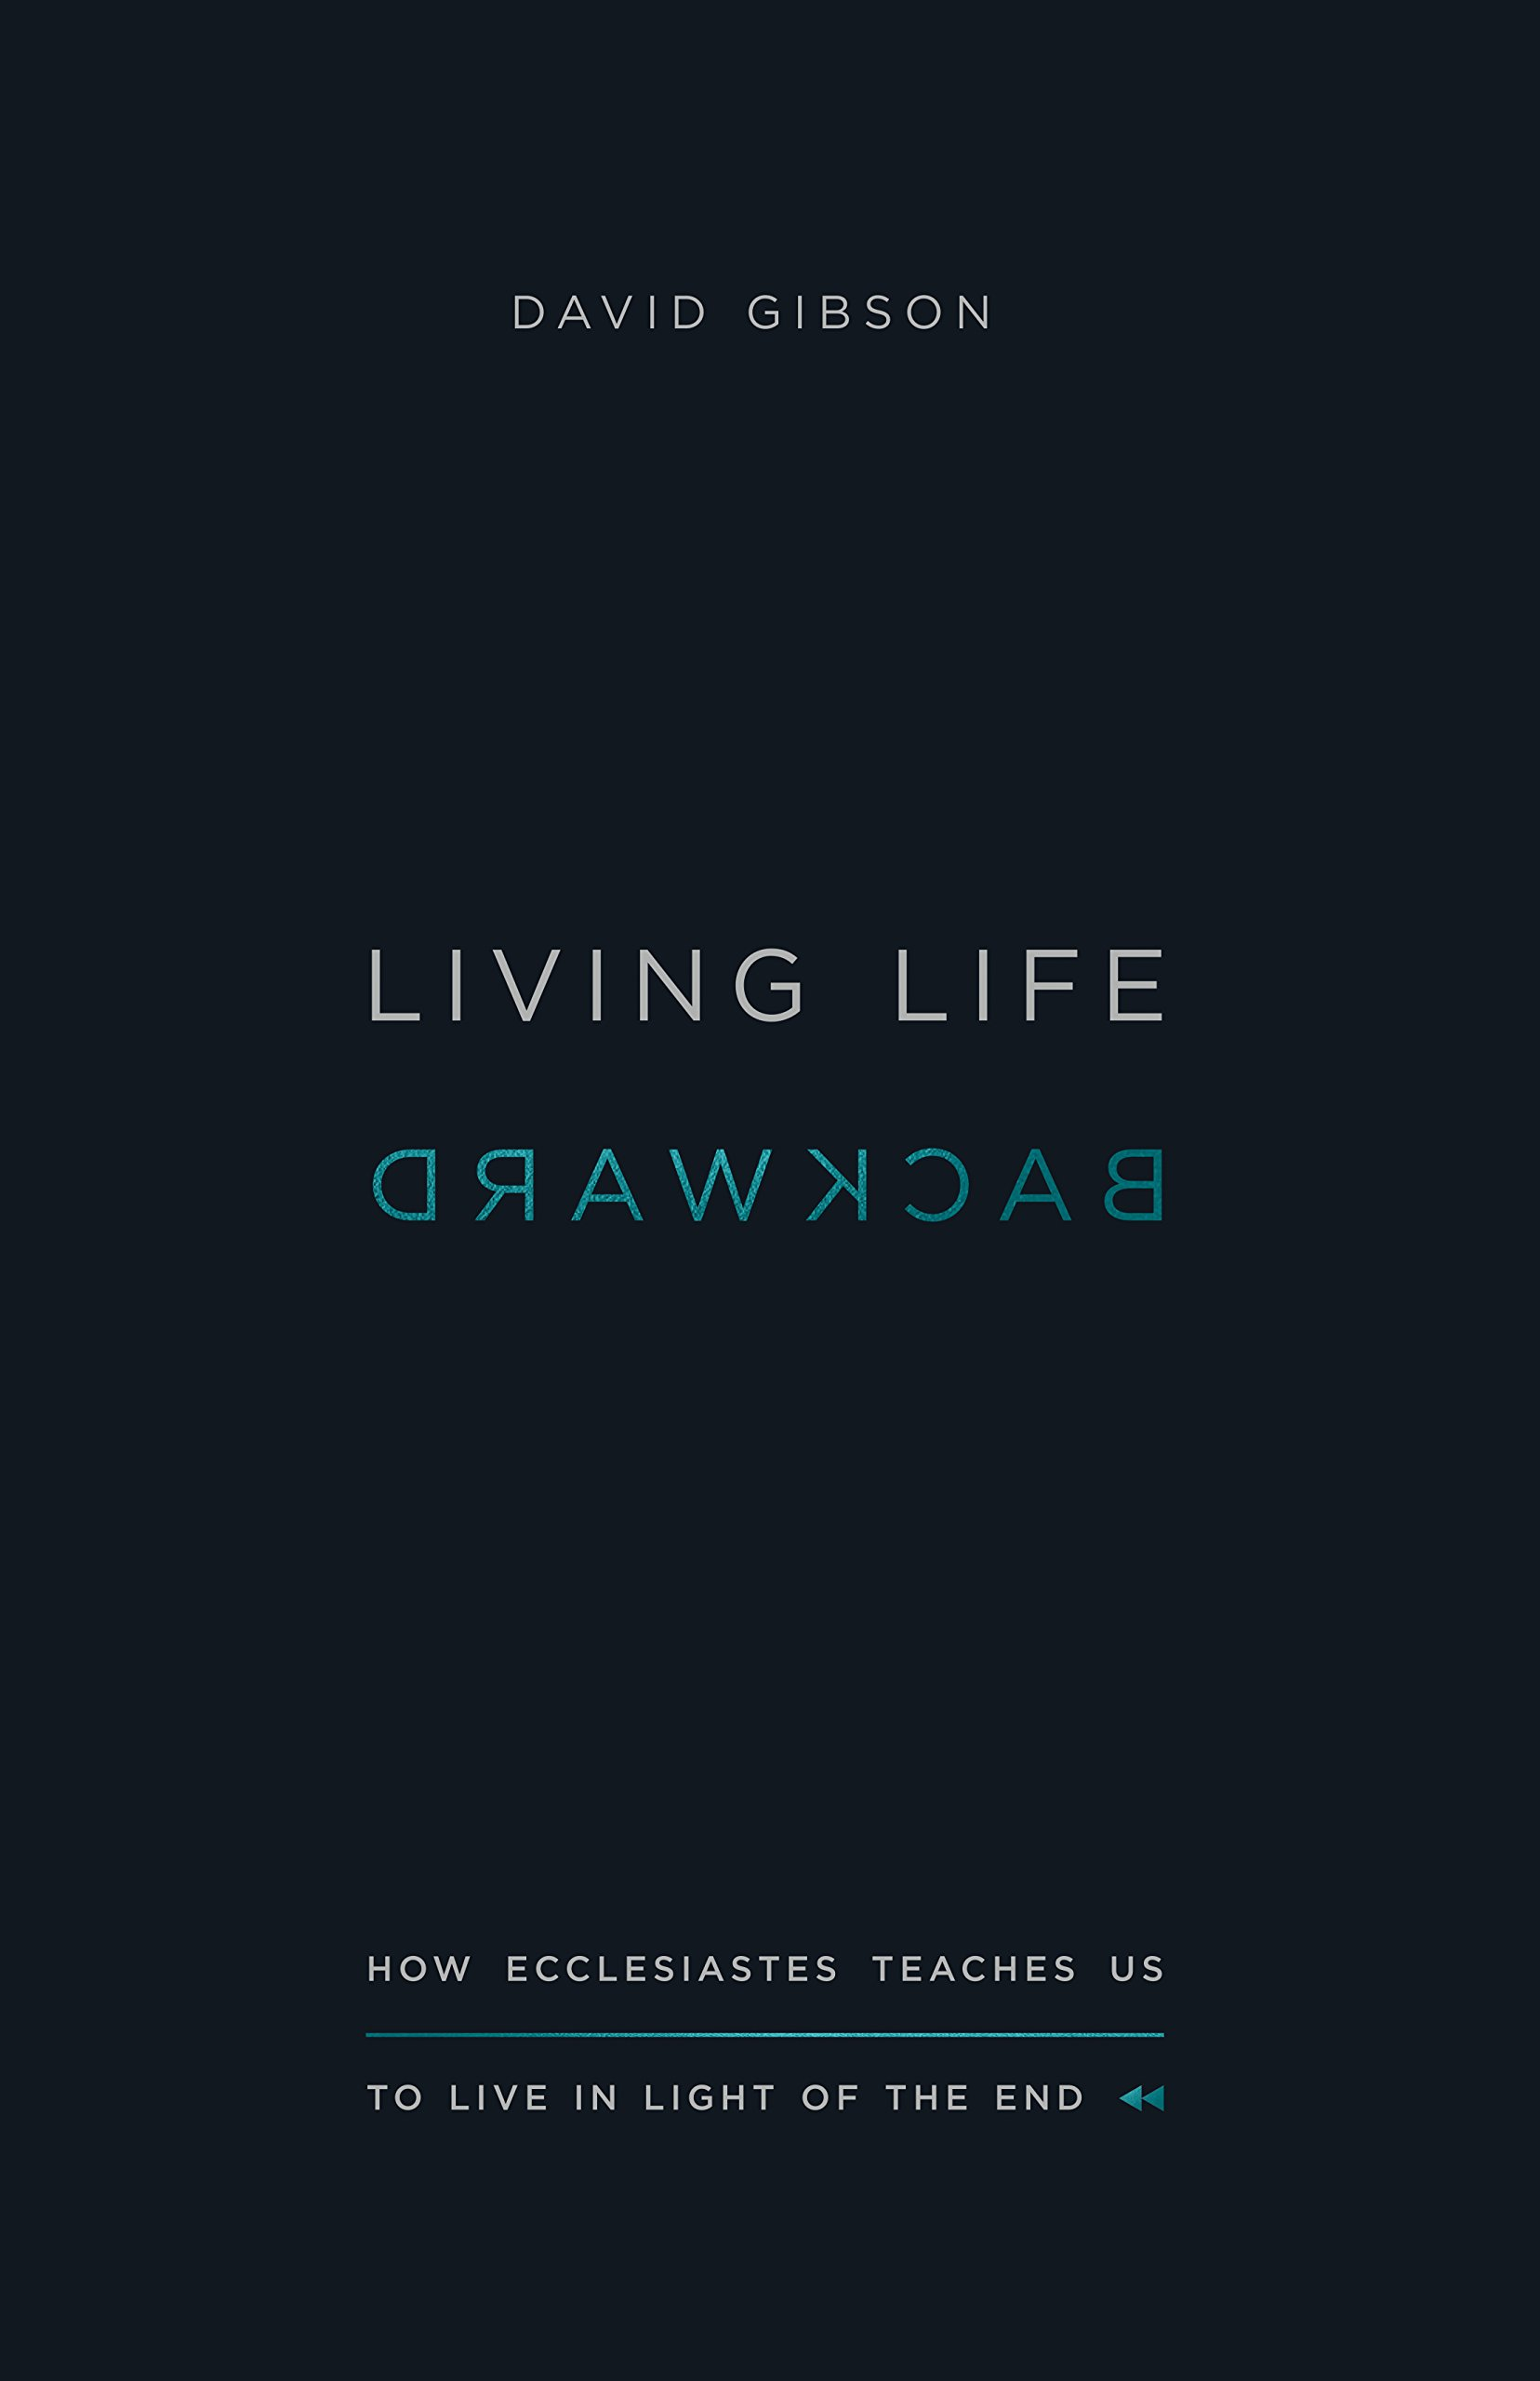 Living Life Backward: How Ecclesiastes Teaches Us to Live in